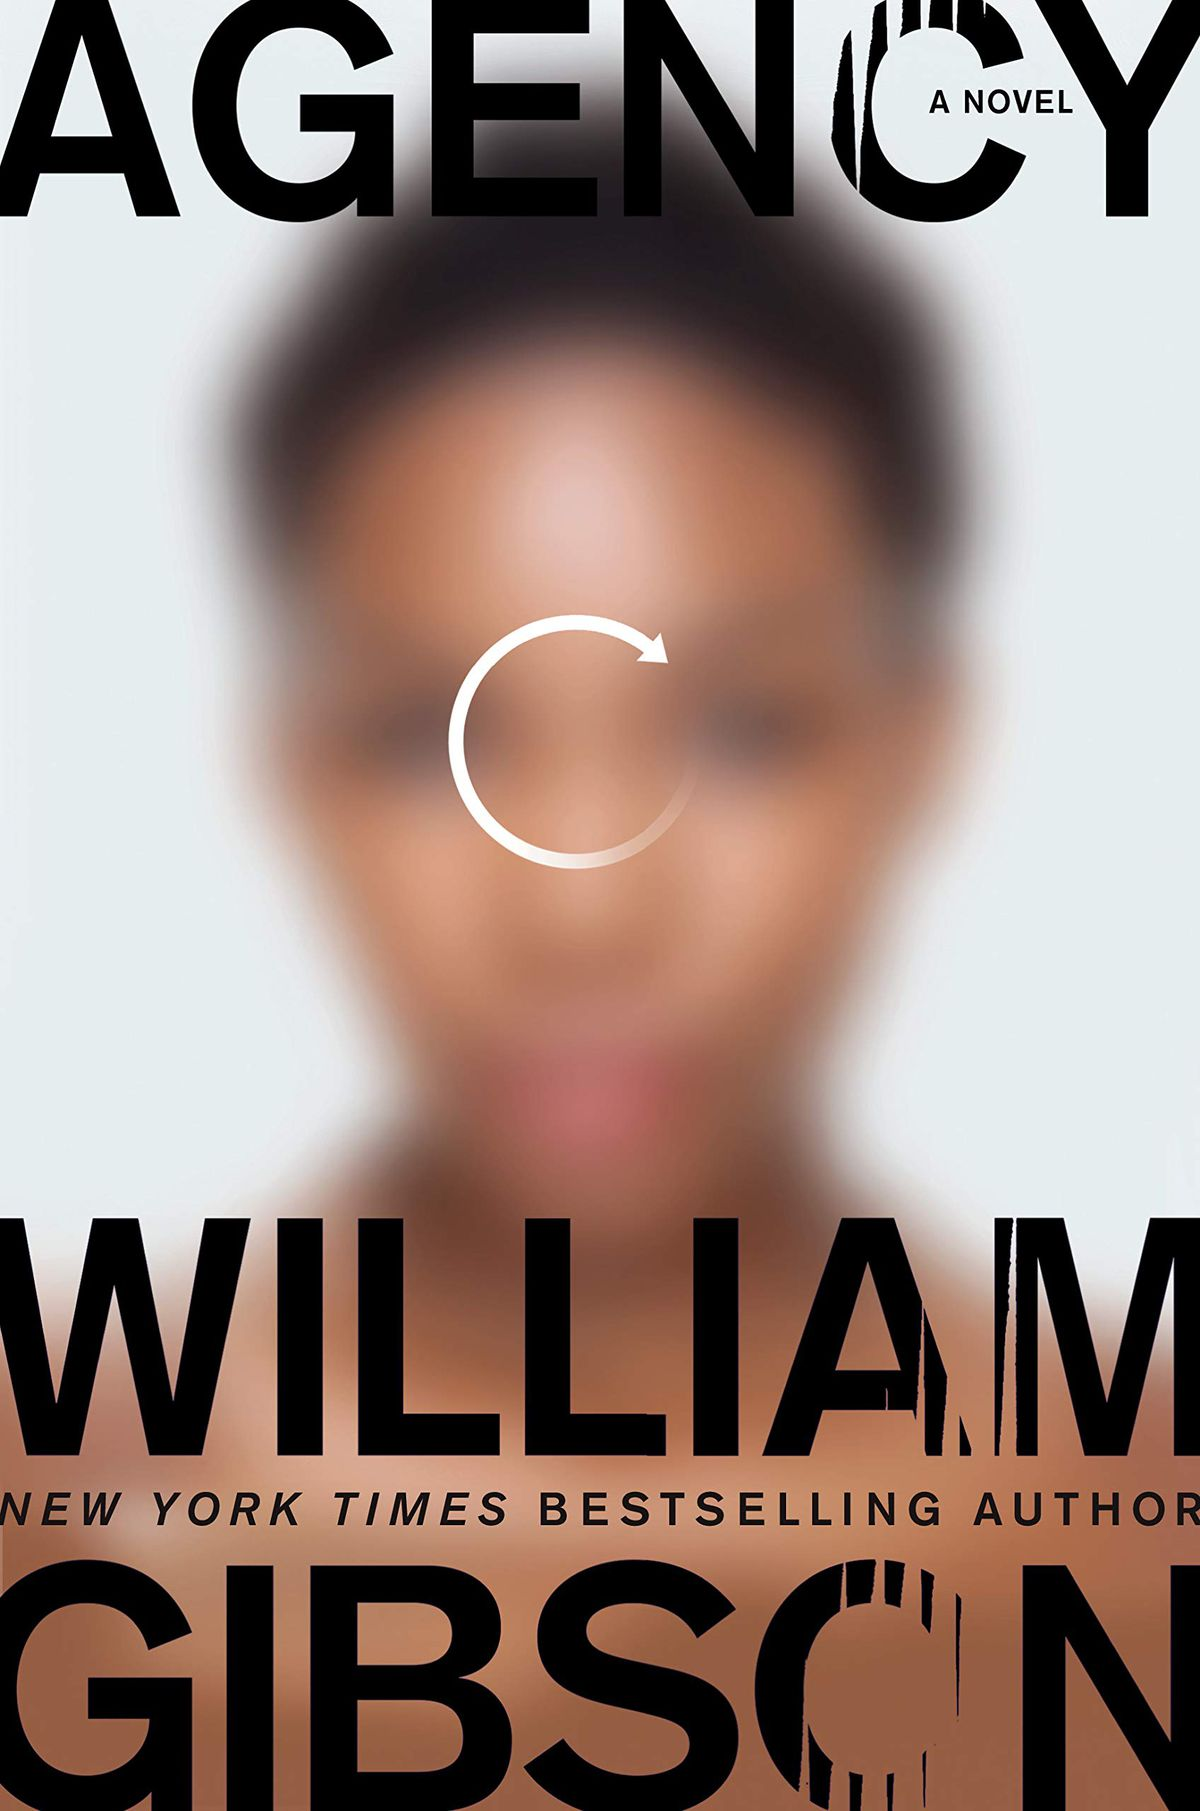 agency by william gibson cover has a black woman out of focus